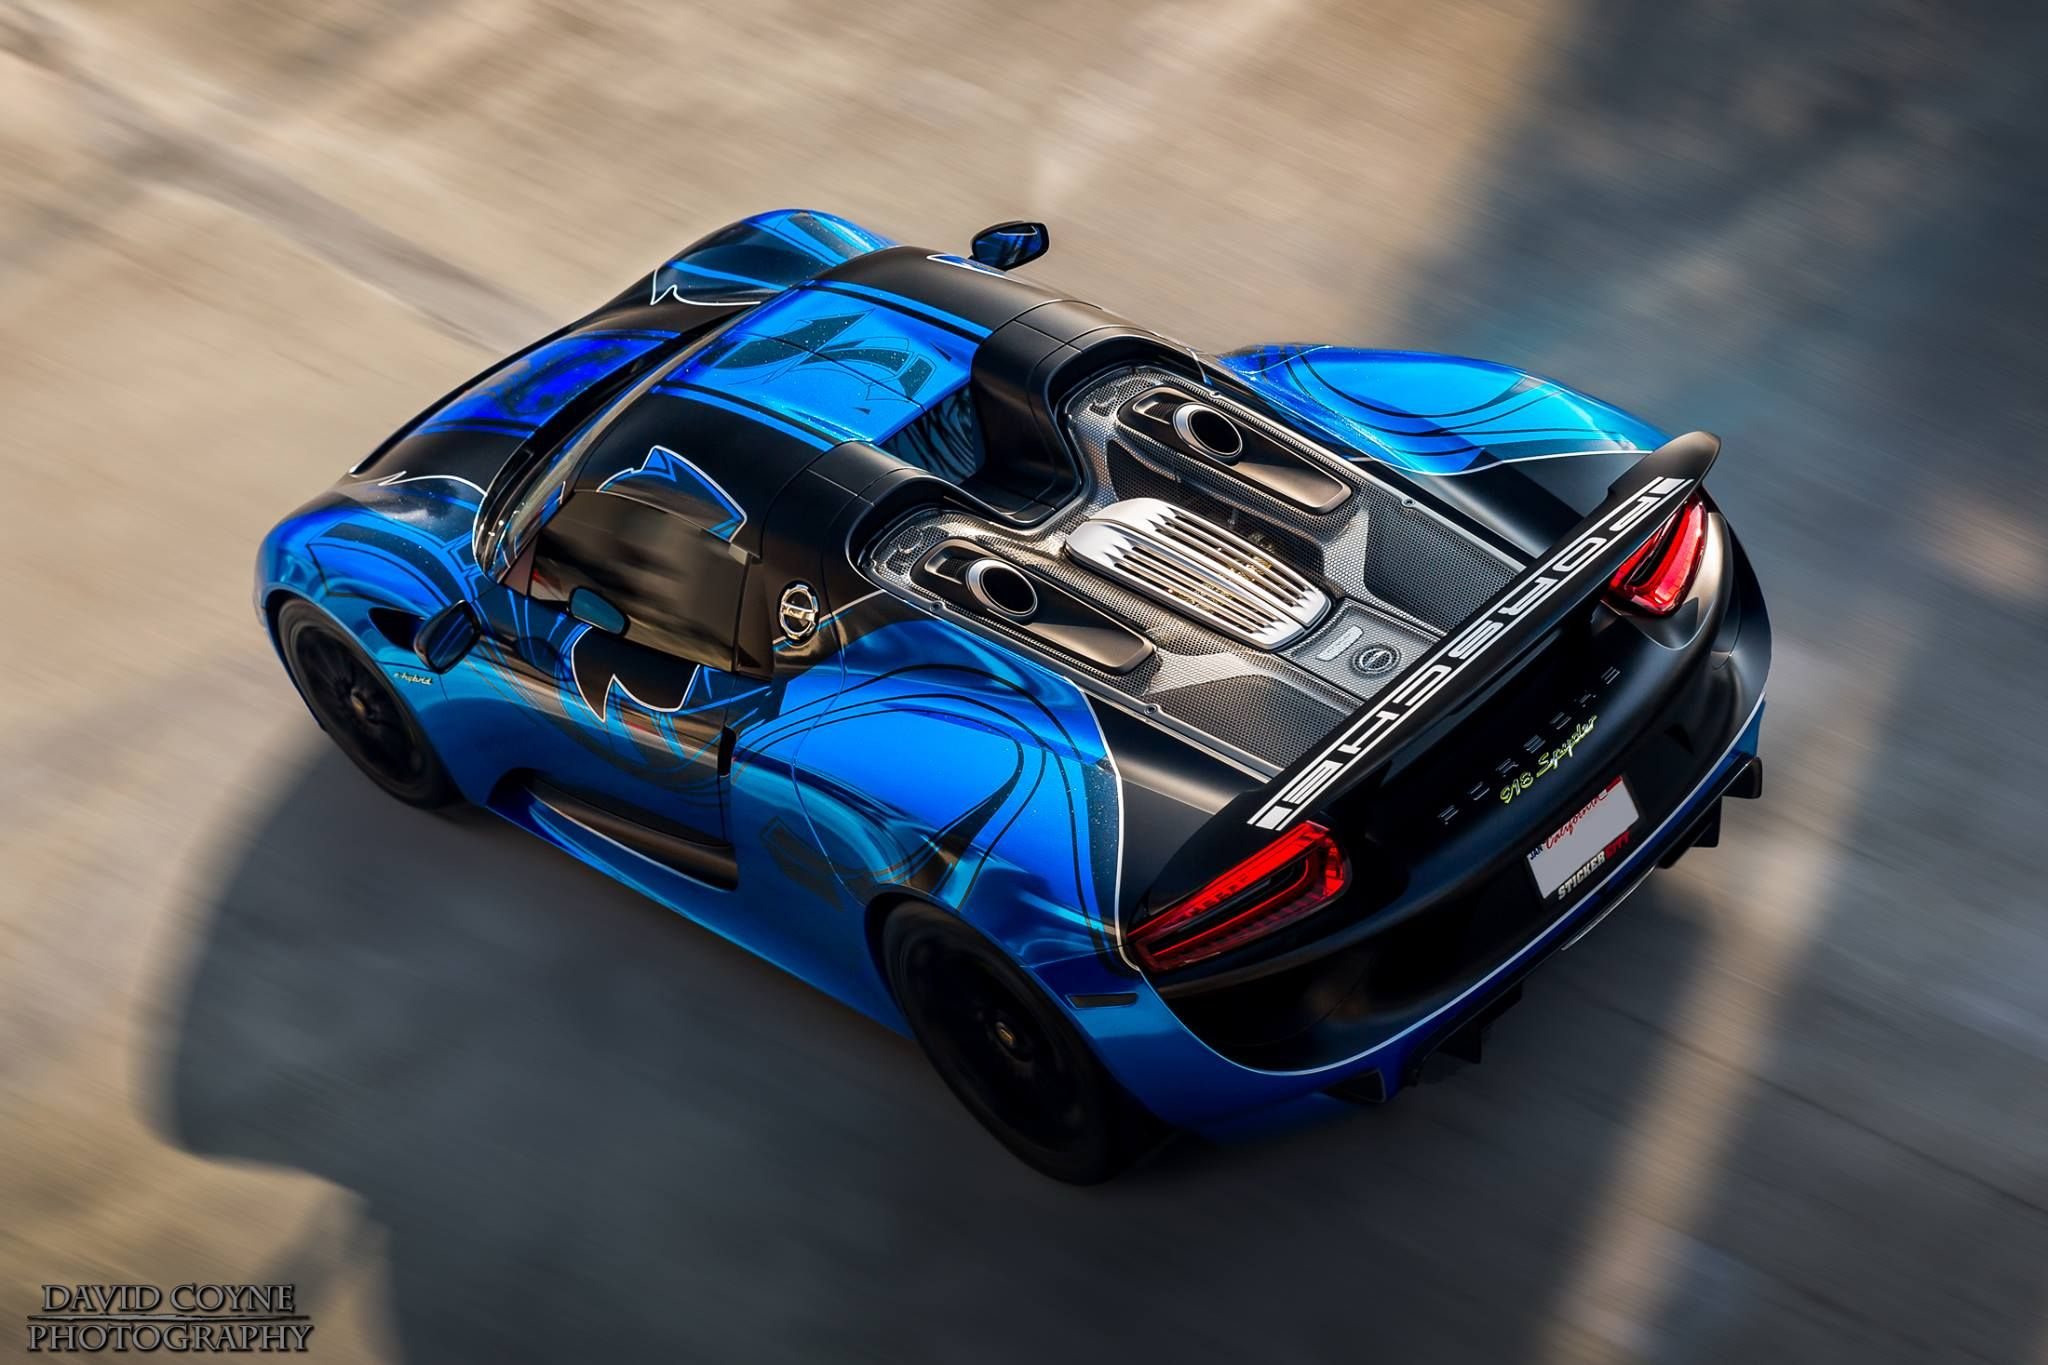 9196ee8f13fc4a0fff4dba44149aff5c Fascinating Porsche 918 Spyder Blue Flame Exhaust Cars Trend